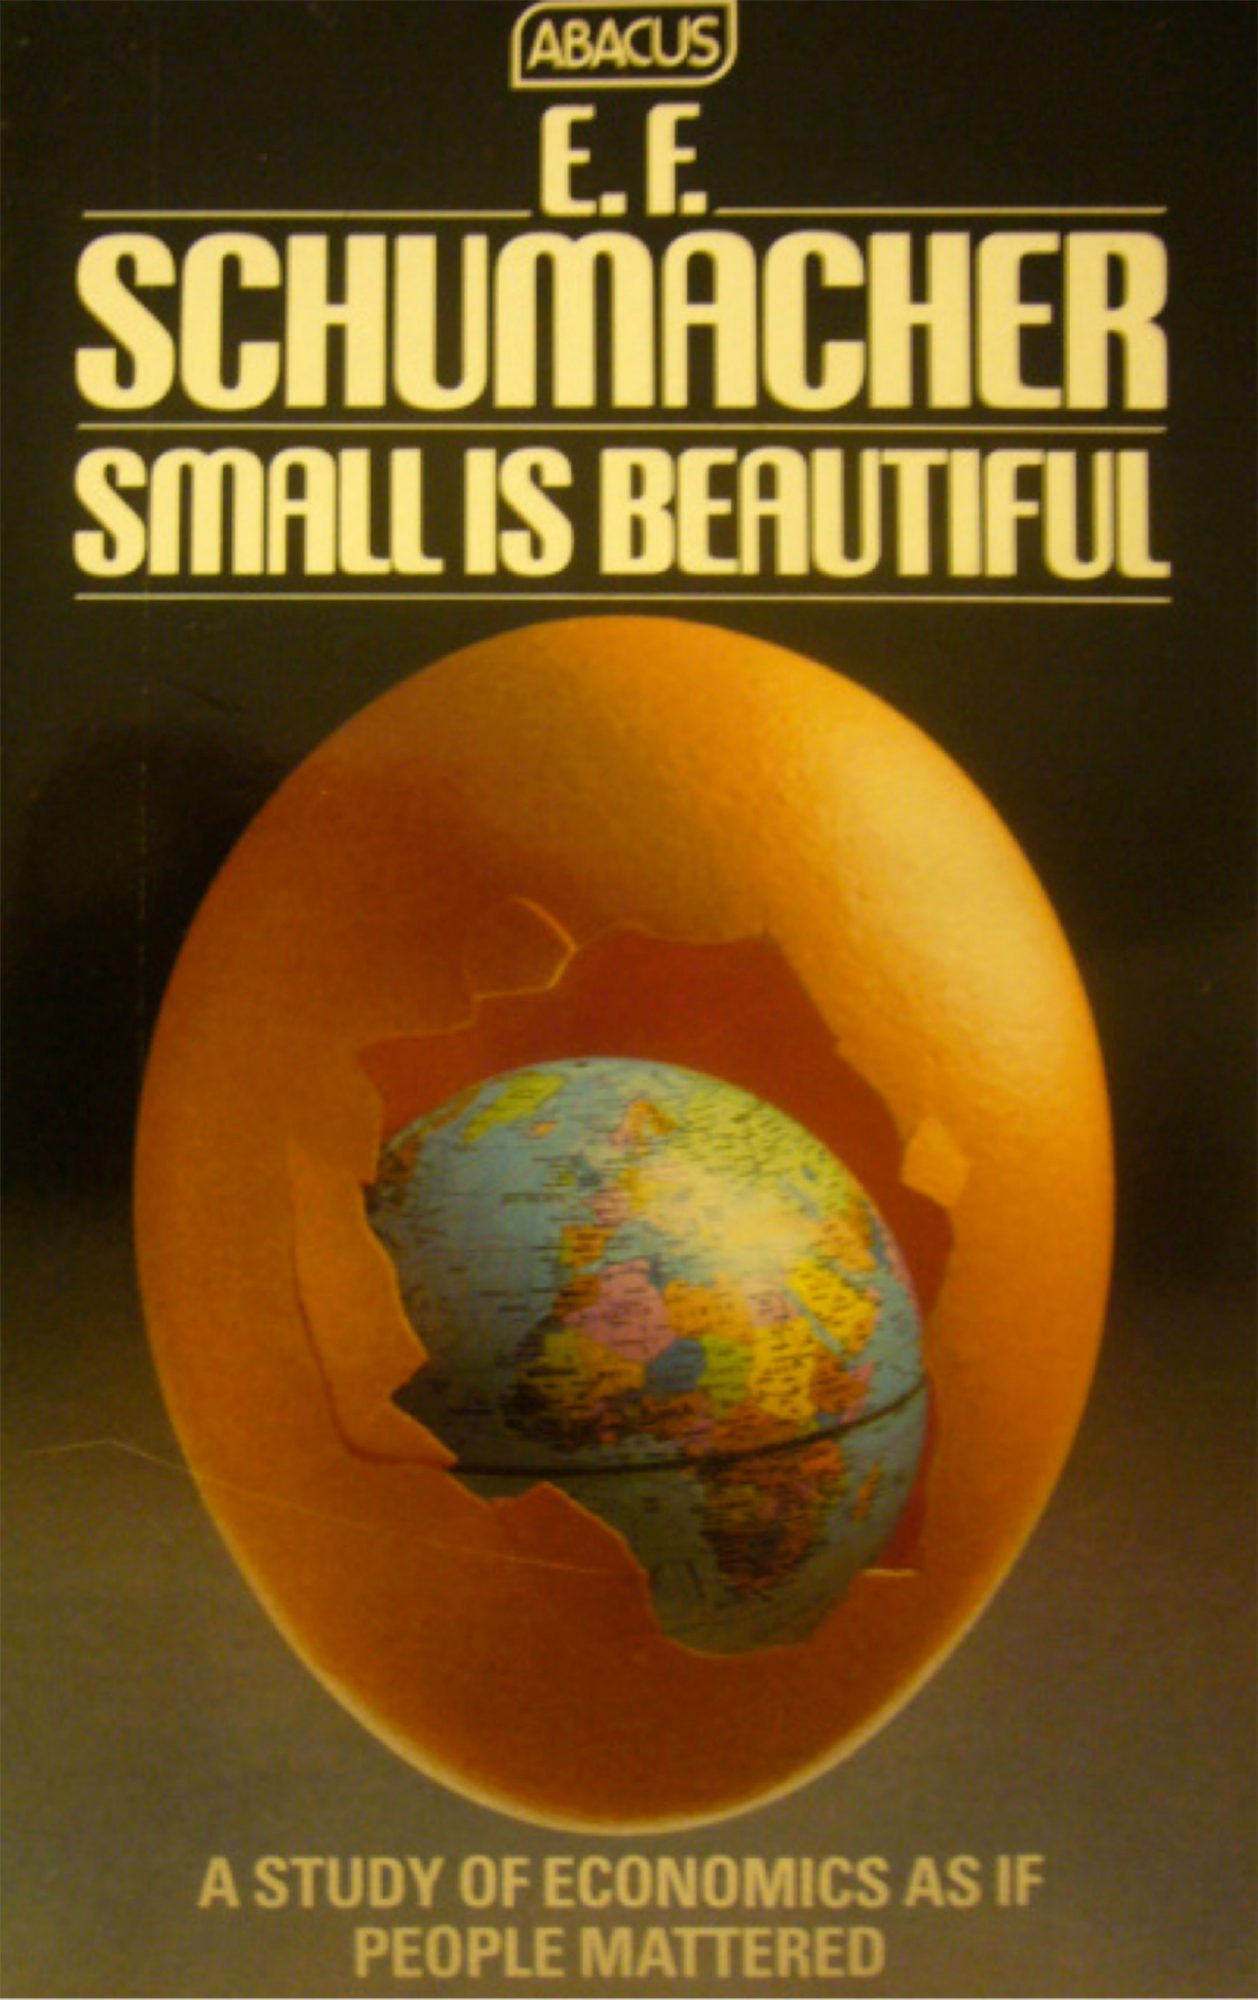 small-is-beautiful